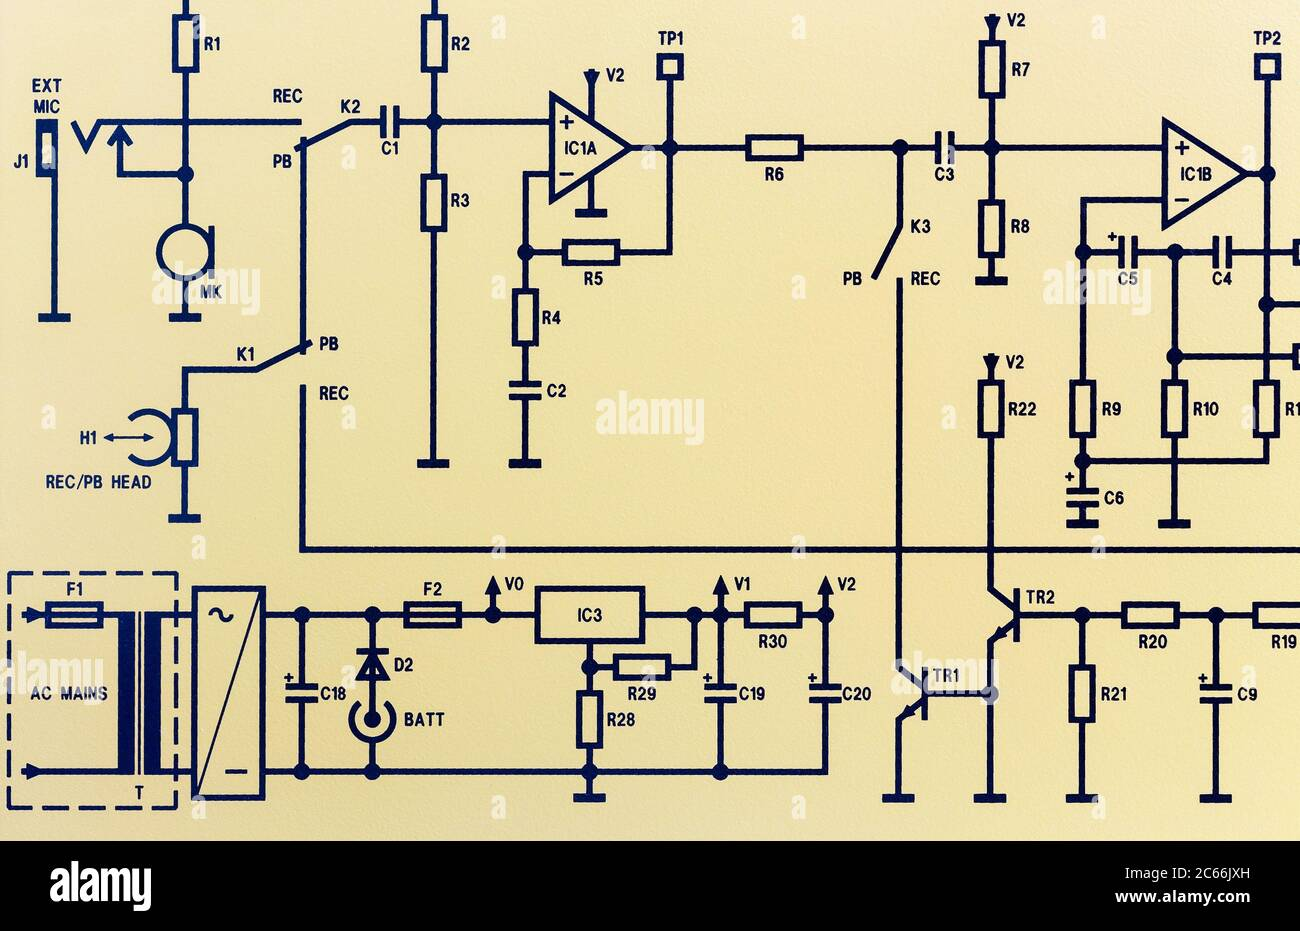 Electrical Engineer Drawing Circuit Diagram High Resolution Stock  Photography and Images - Alamy [ 931 x 1300 Pixel ]